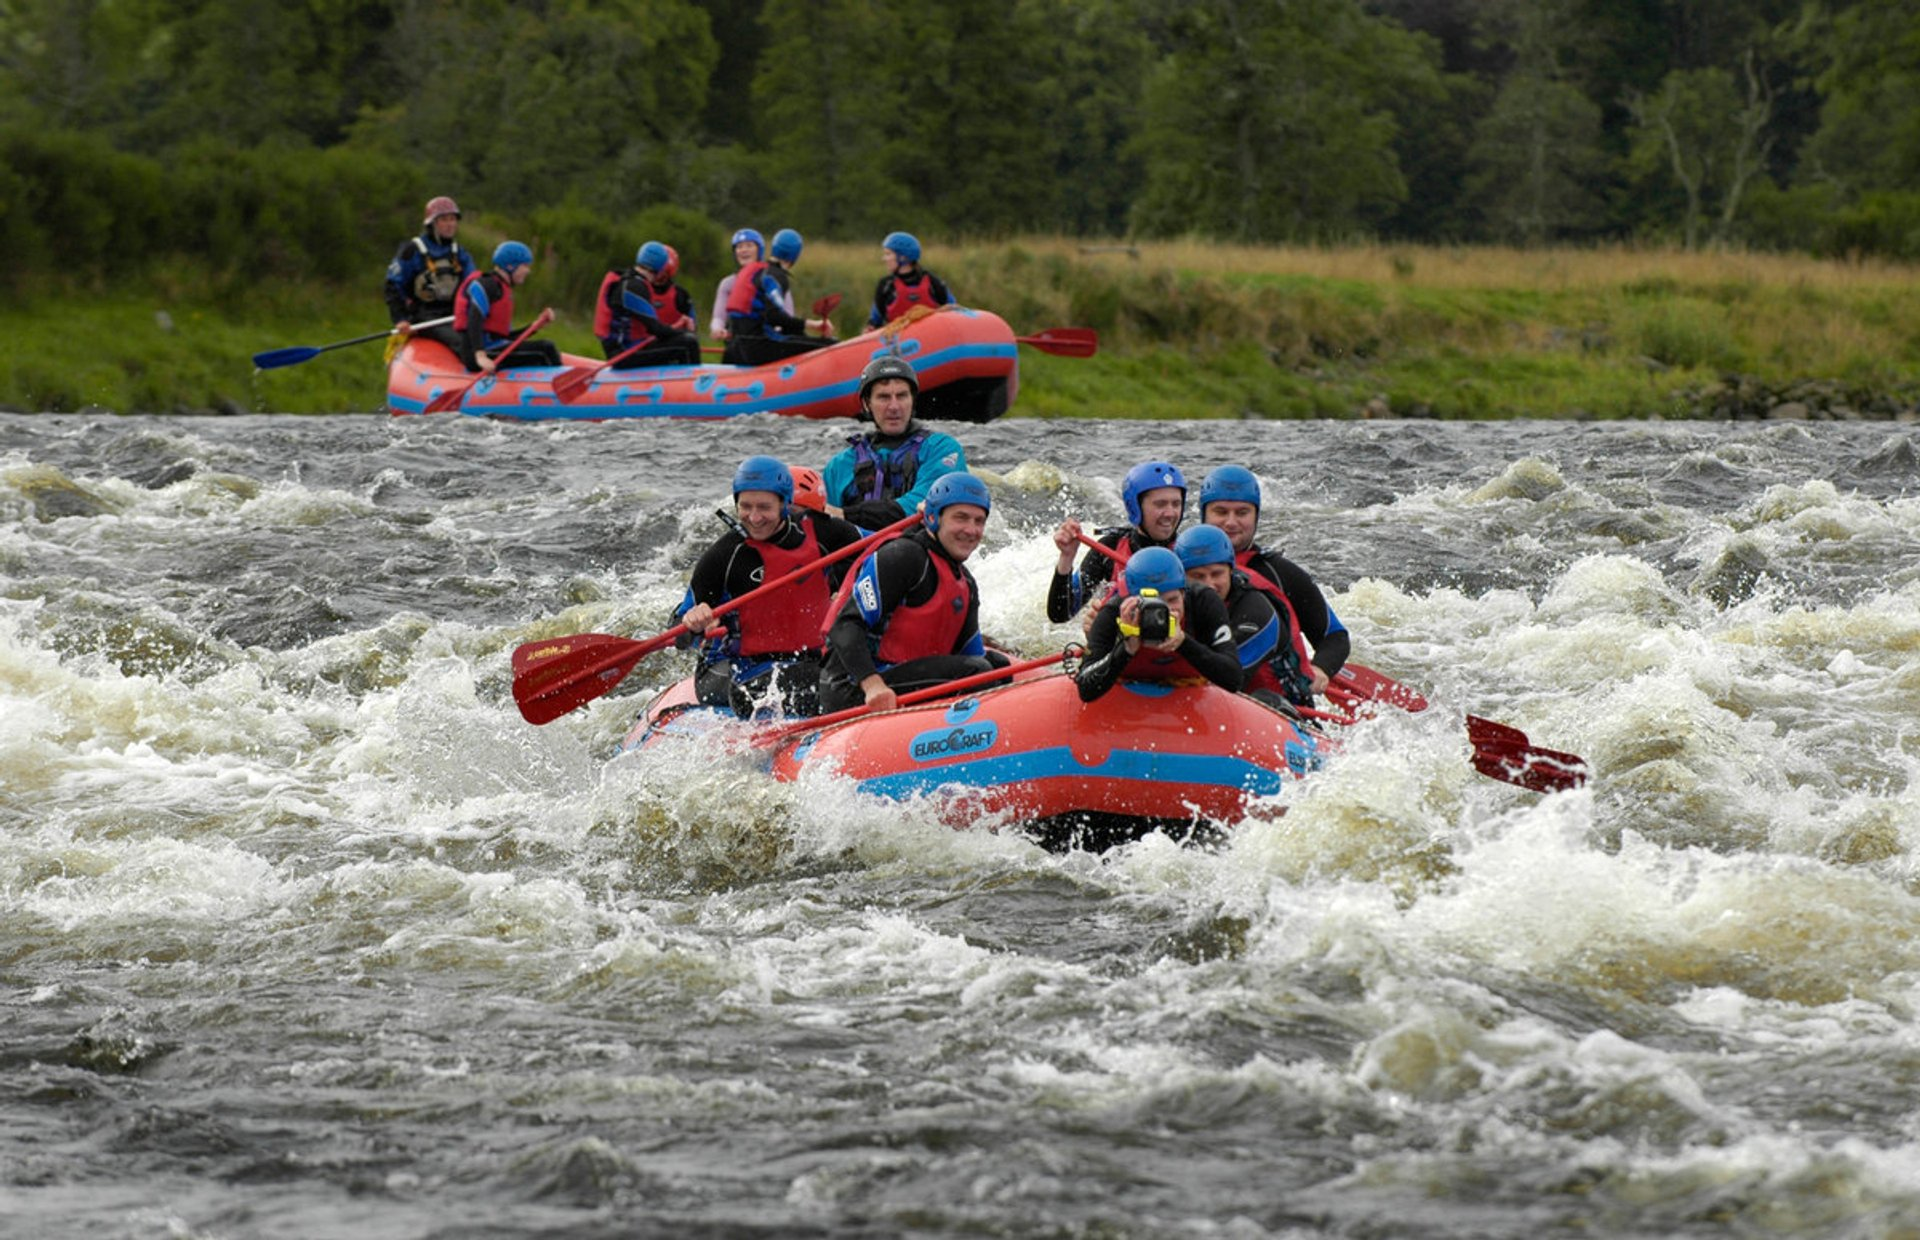 Rafting on the River Spey with full on adventure  2020